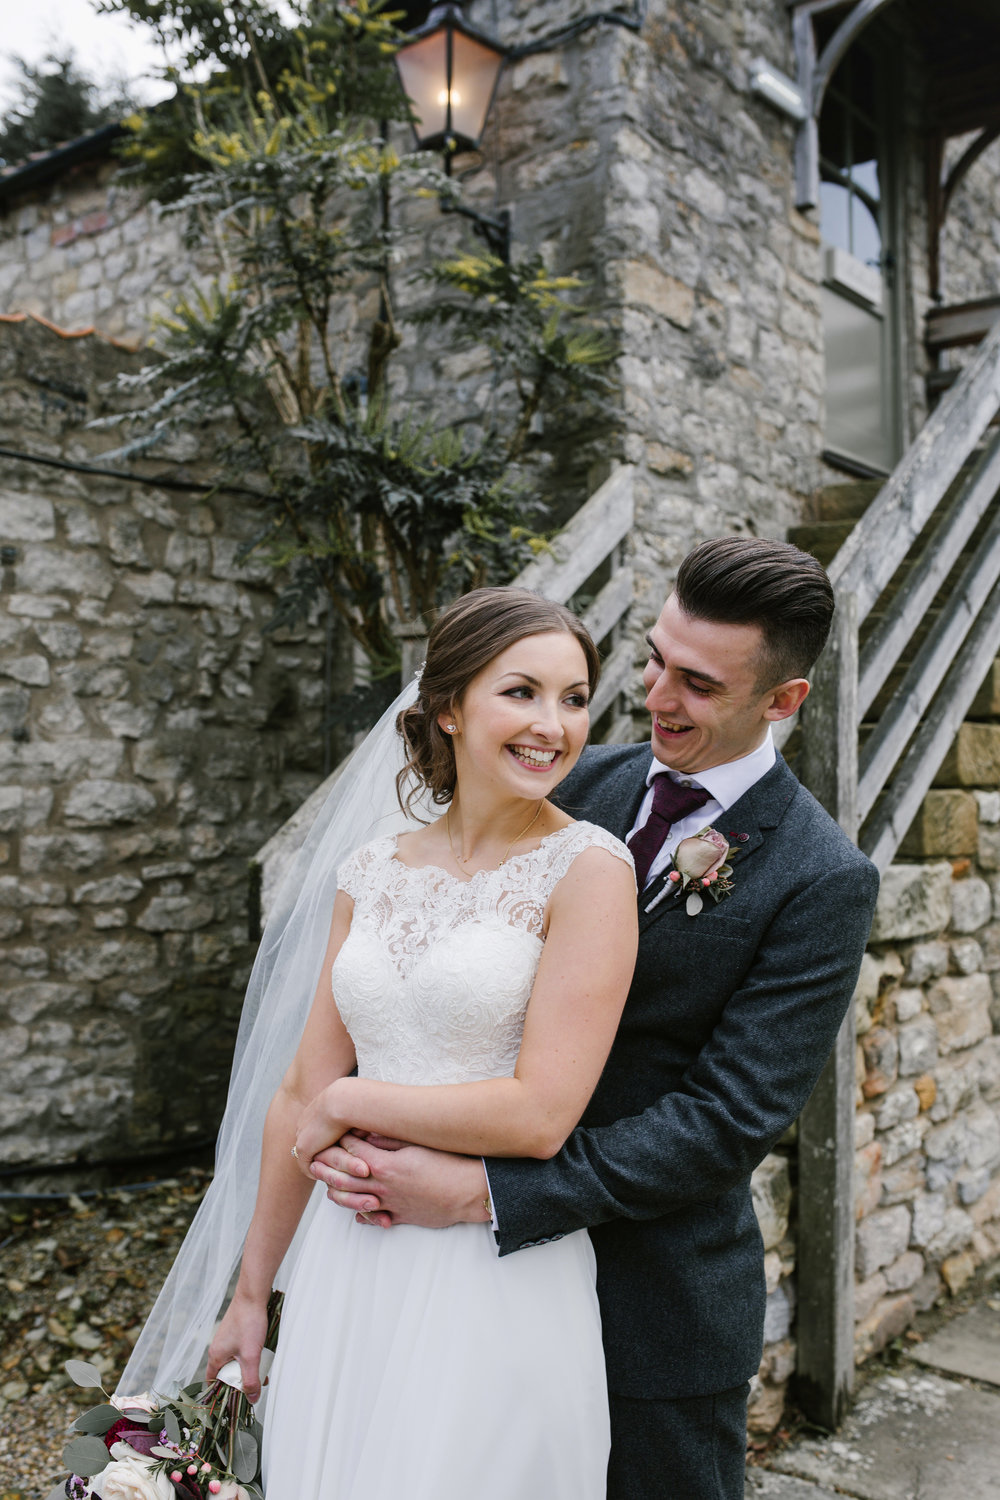 The Pheasant Hotel Harome, winter wedding, winter wedding ideas, staffordshire photographer, staffordshire wedding photographer, wedding ideas, wedding inspiration-122.jpg